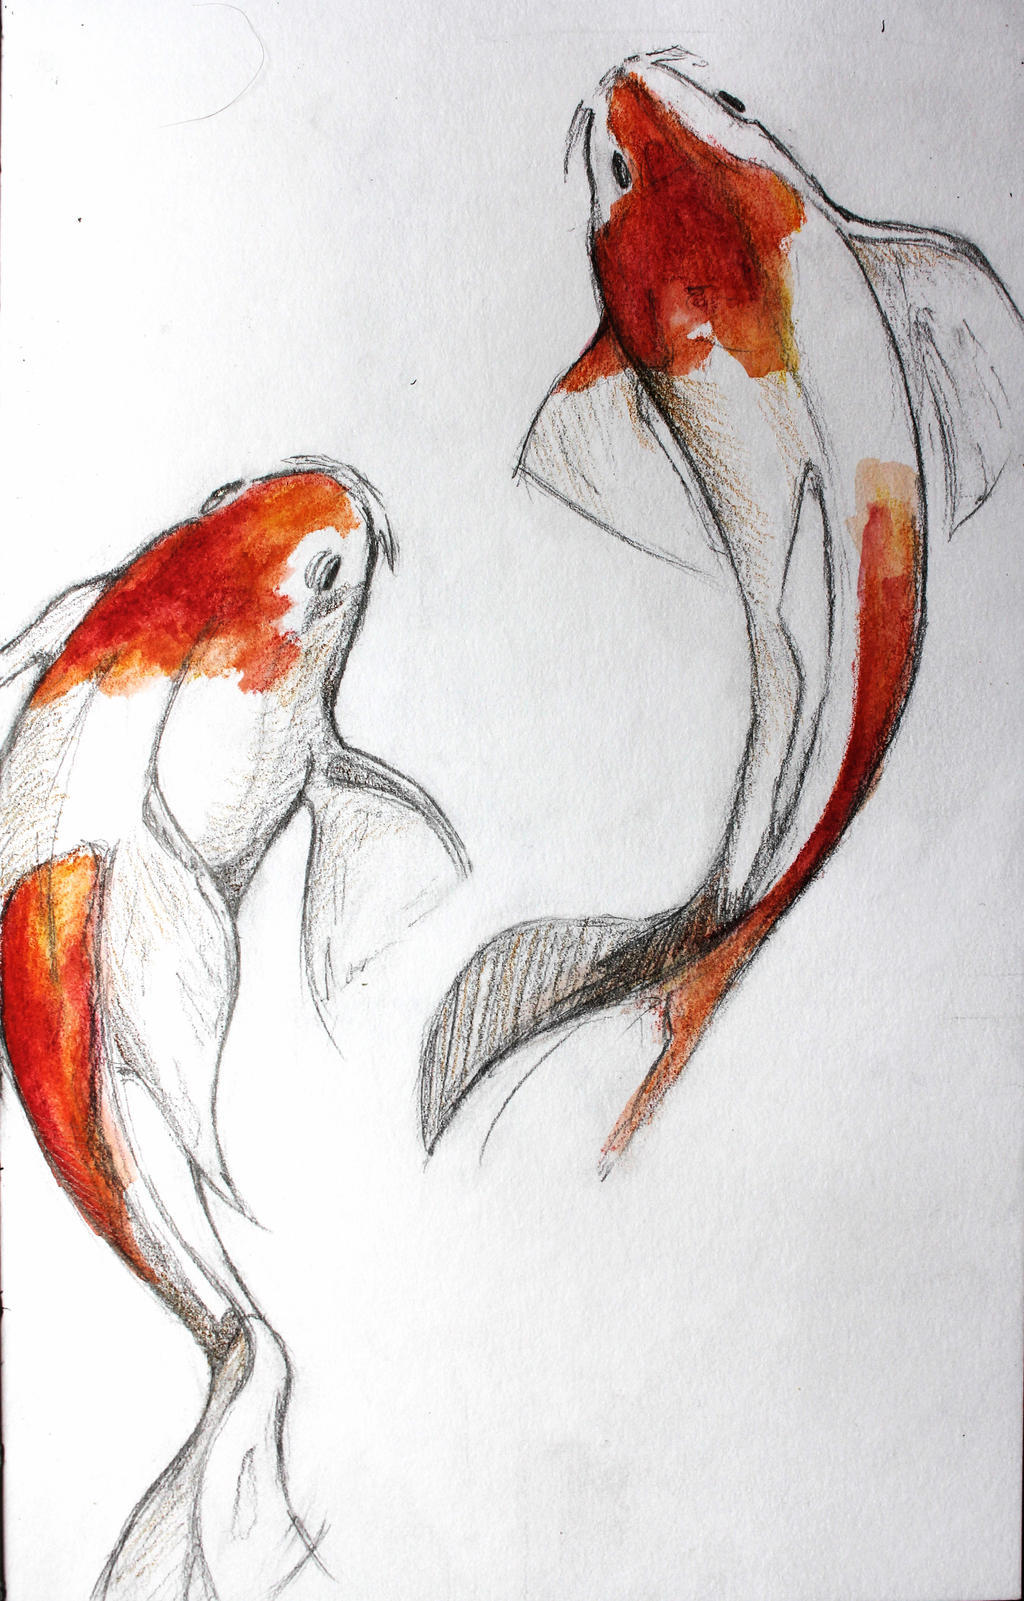 Koi fish by lulupapercranes on deviantart for Purchase koi fish